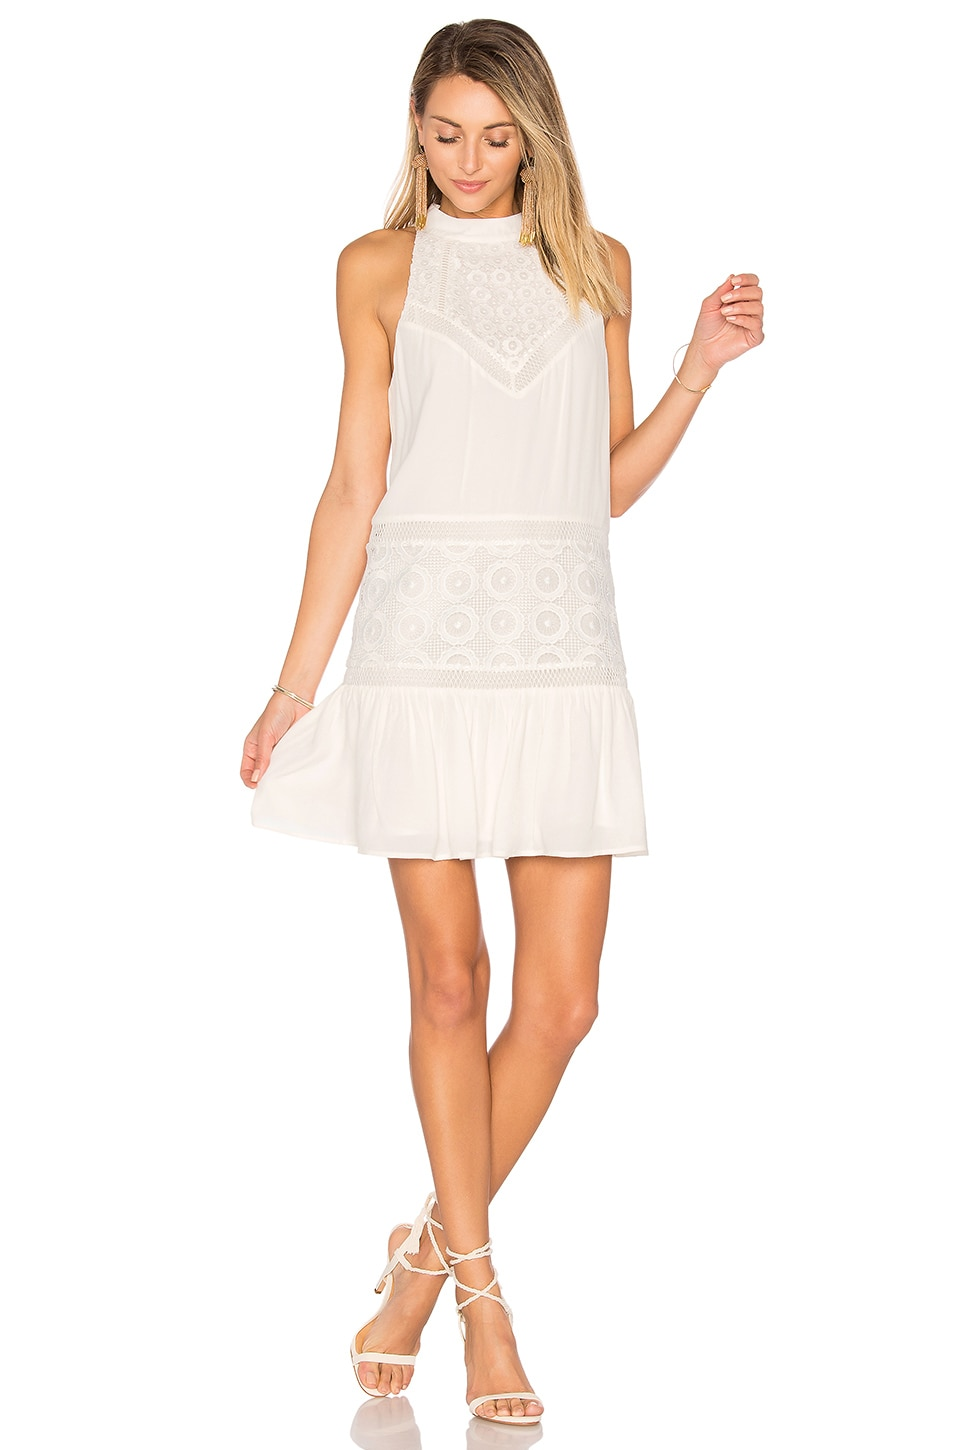 Lovers + Friends Star Chaser Dress in Ivory